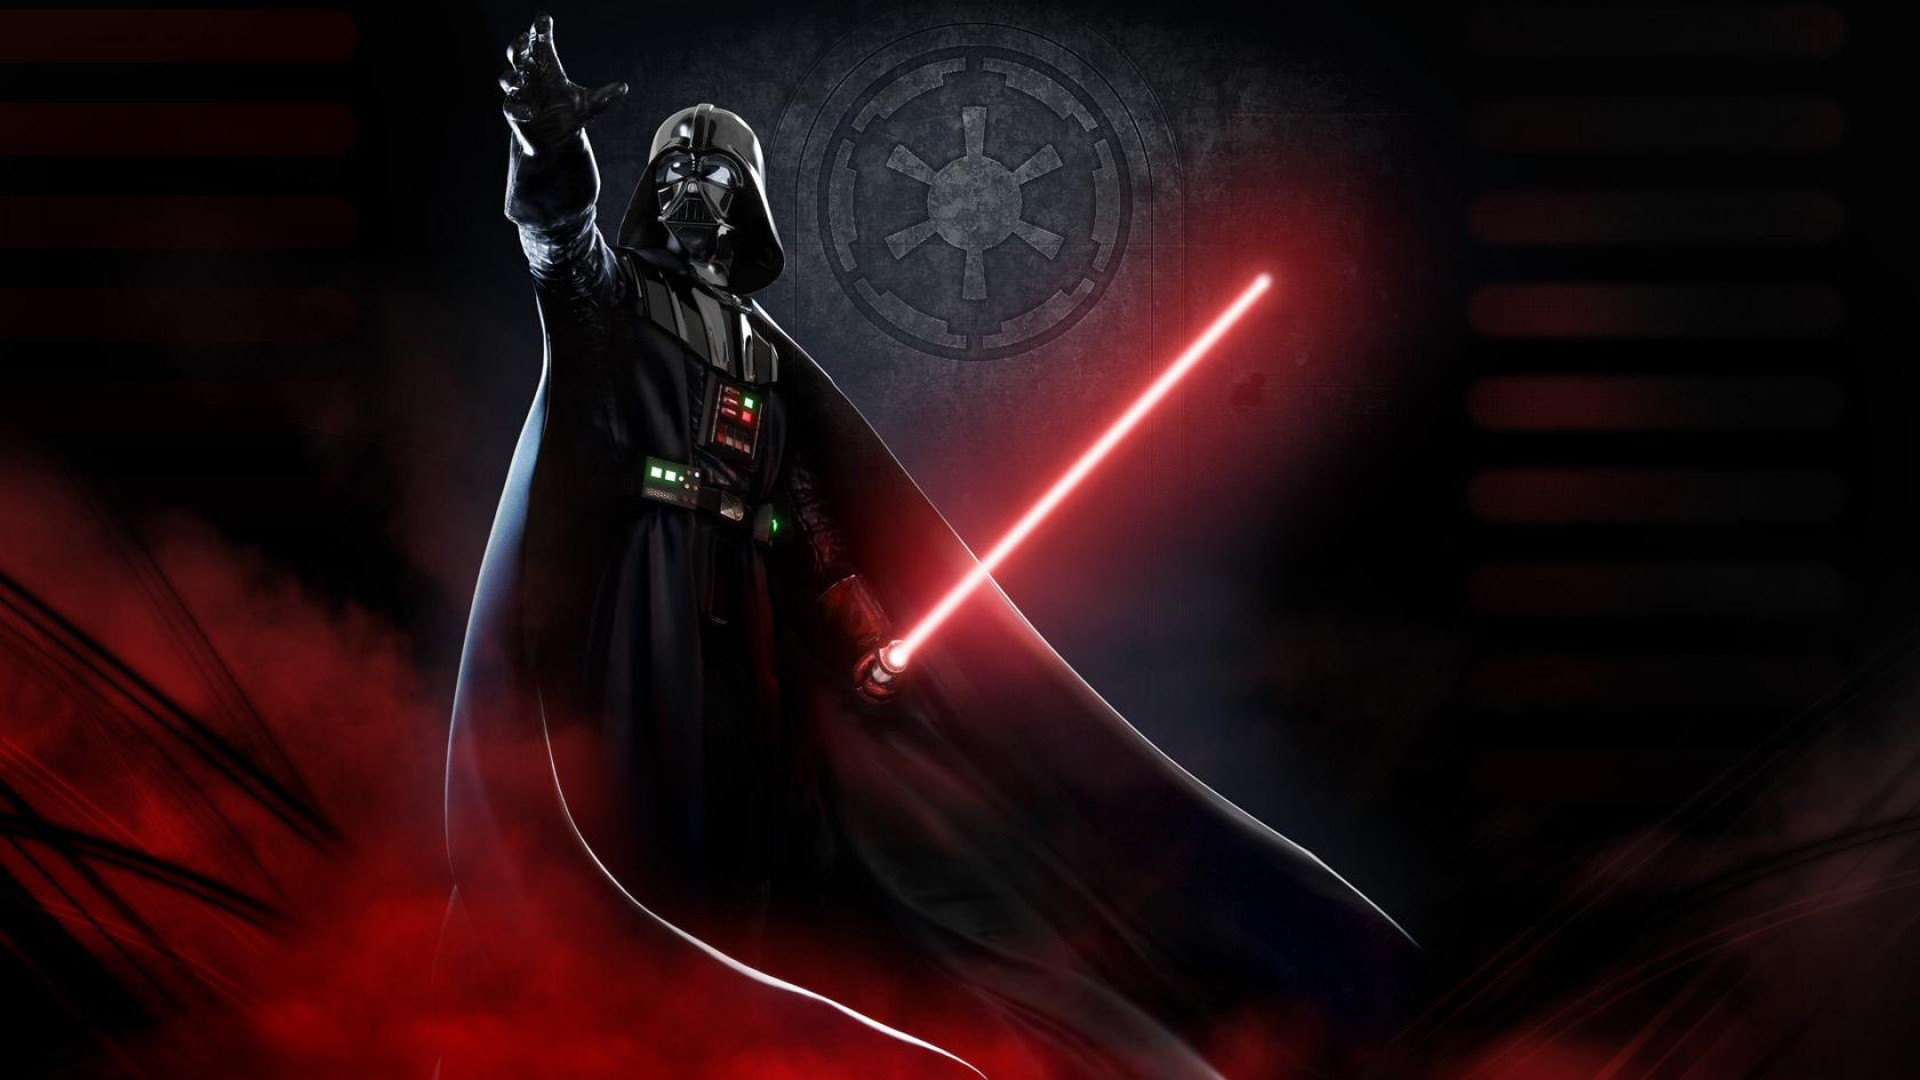 Sith Wallpaper 1080p 70 Images